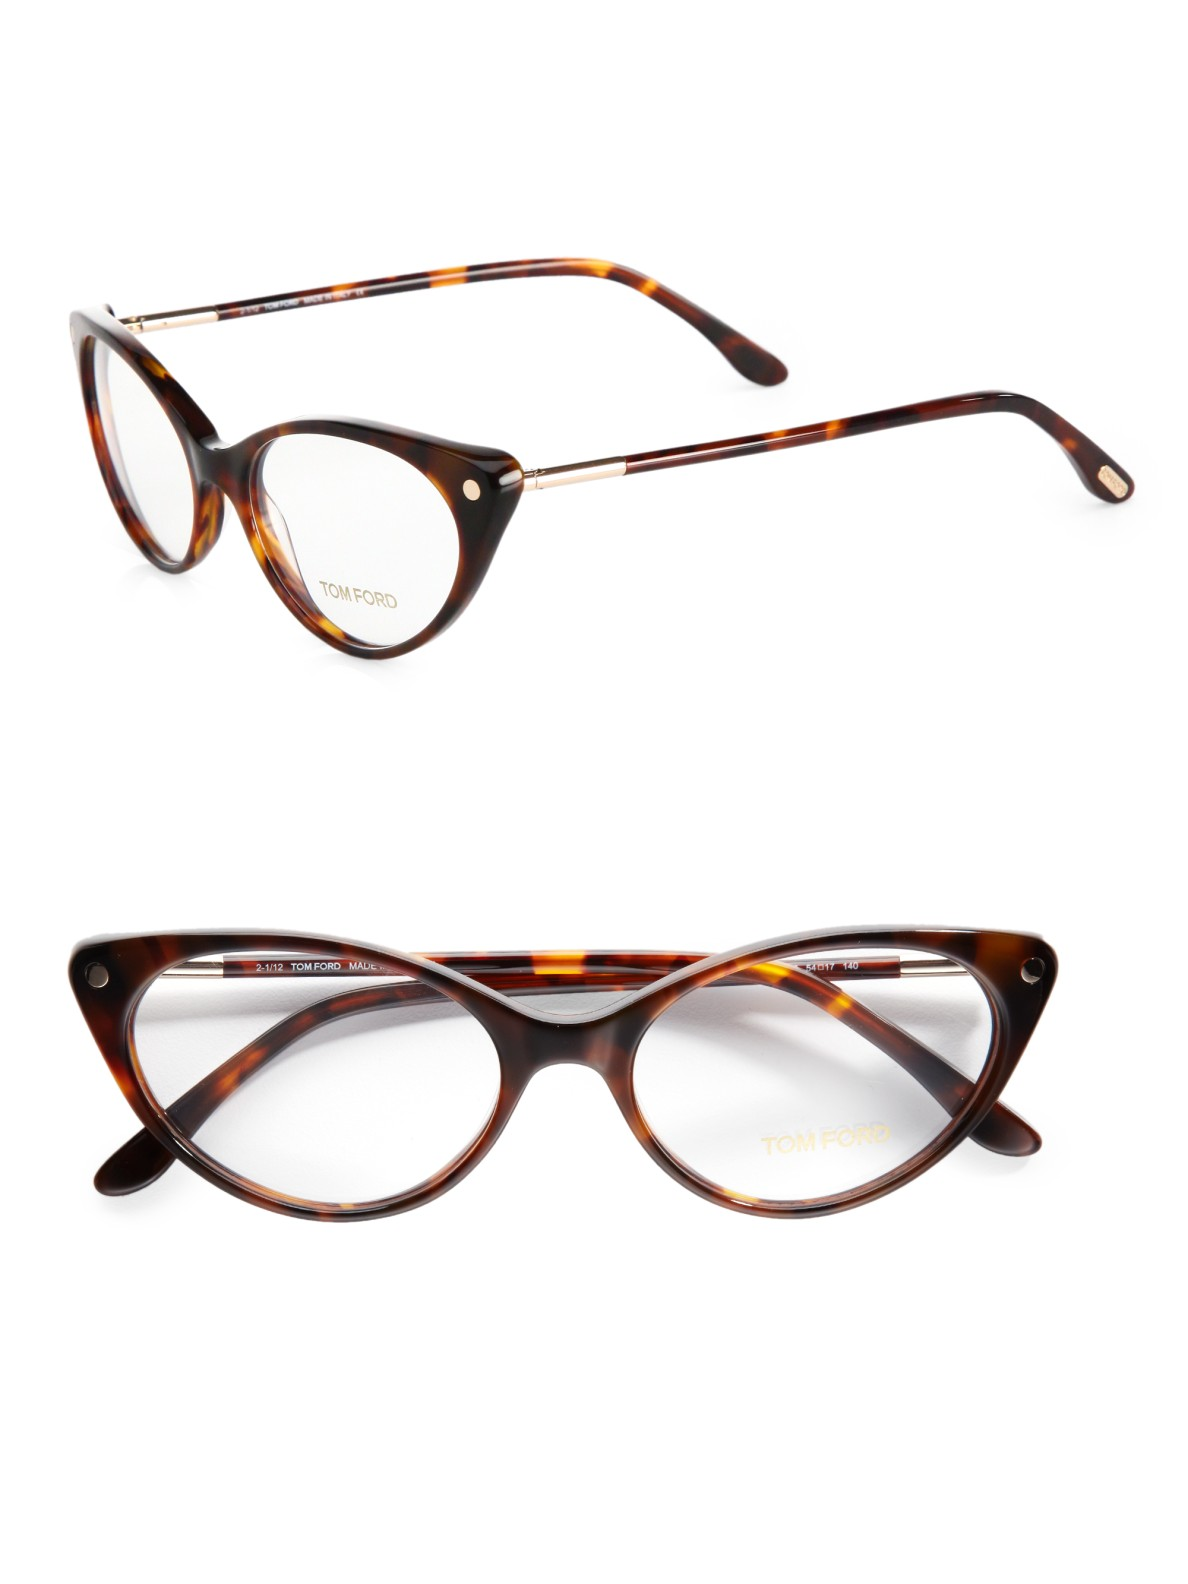 Eyeglass Frames Modern : Tom ford Modern Cats-Eye Plastic Eyeglasses in Brown Lyst